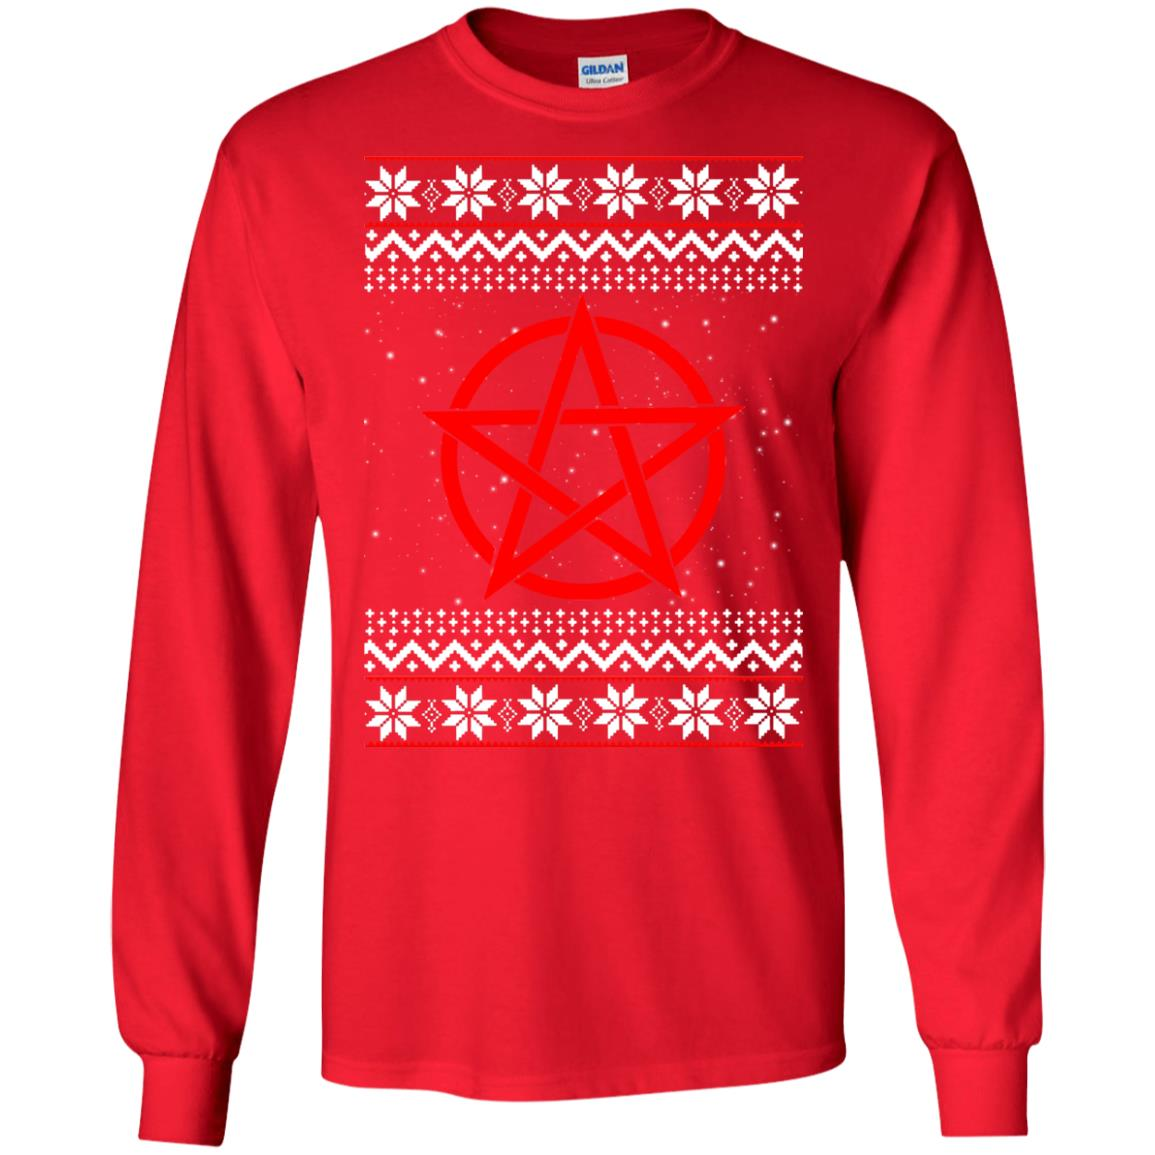 Satanic Christmas Sweater.Satanic Christmas Sweater Hoodie Long Sleeve Icestork